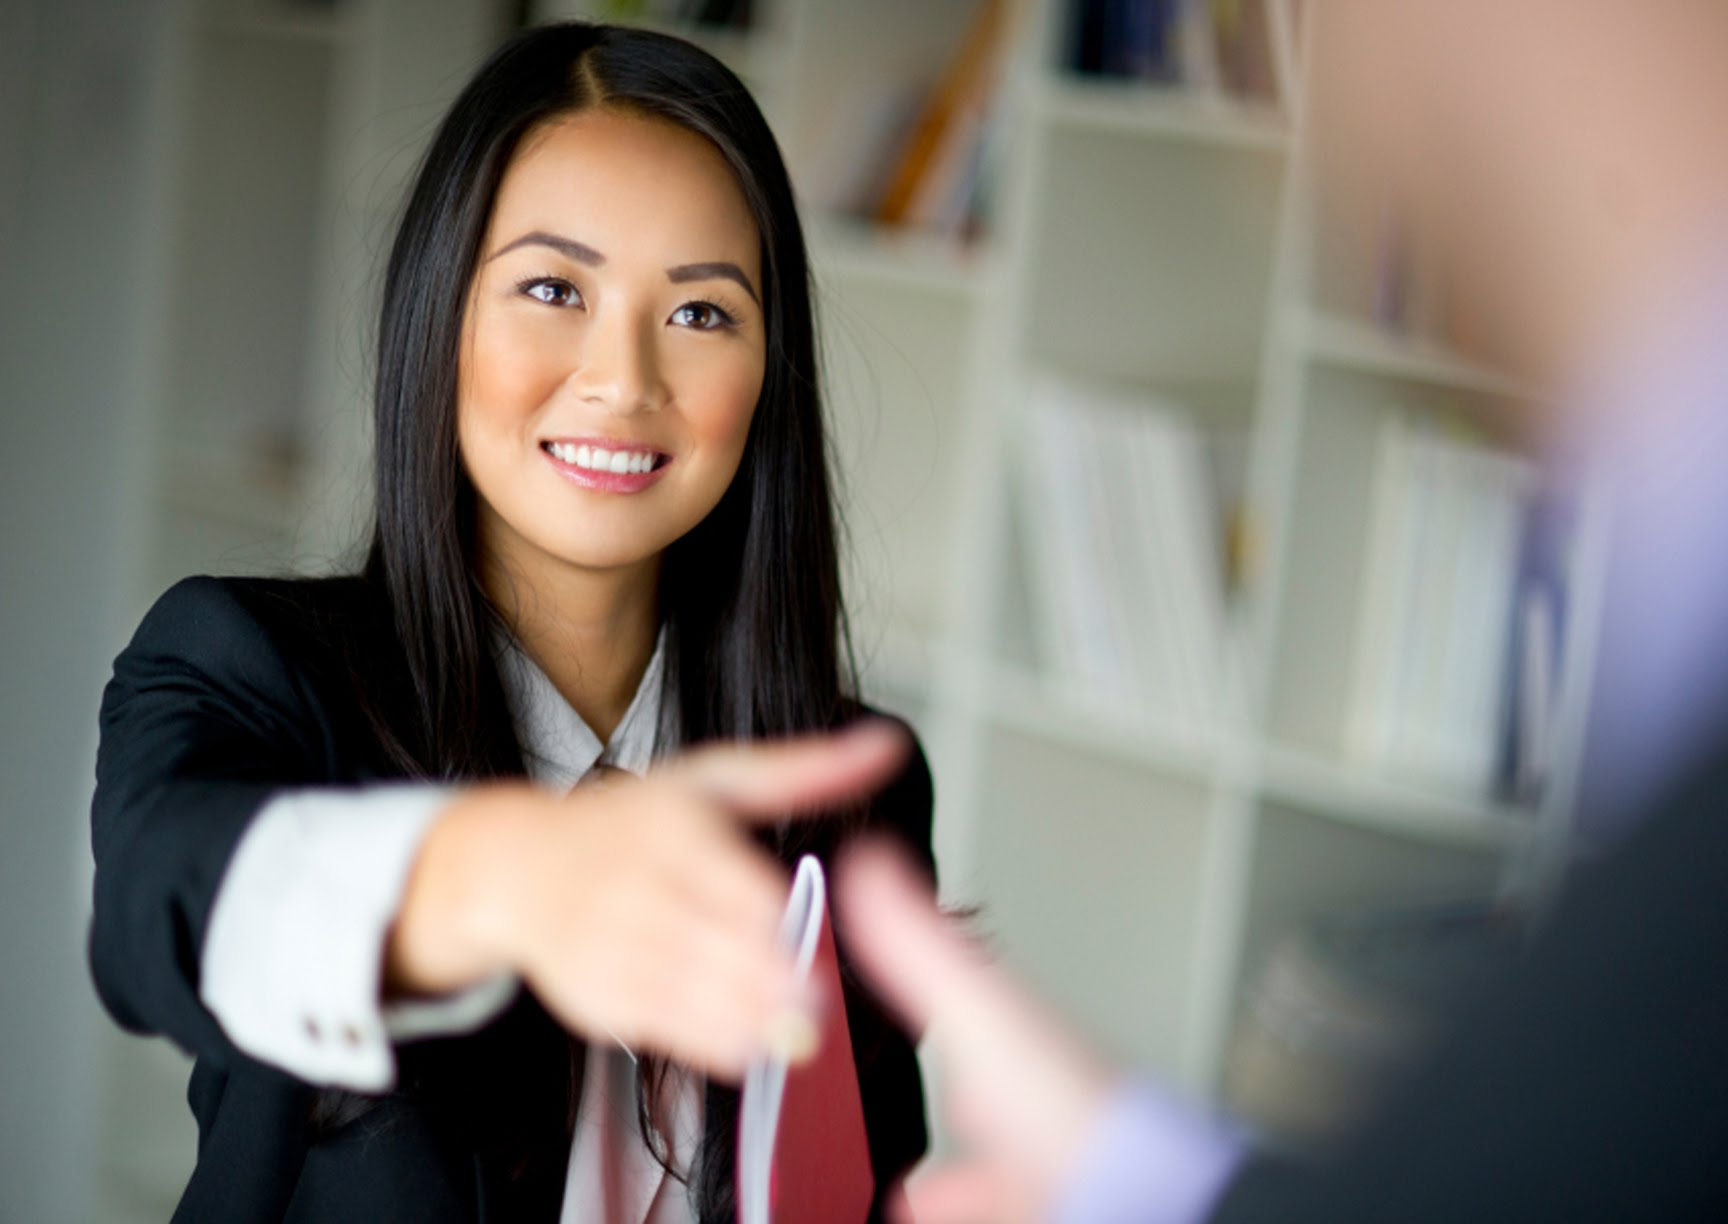 7 Ways You Can Prepare Yourself for Proper Interview